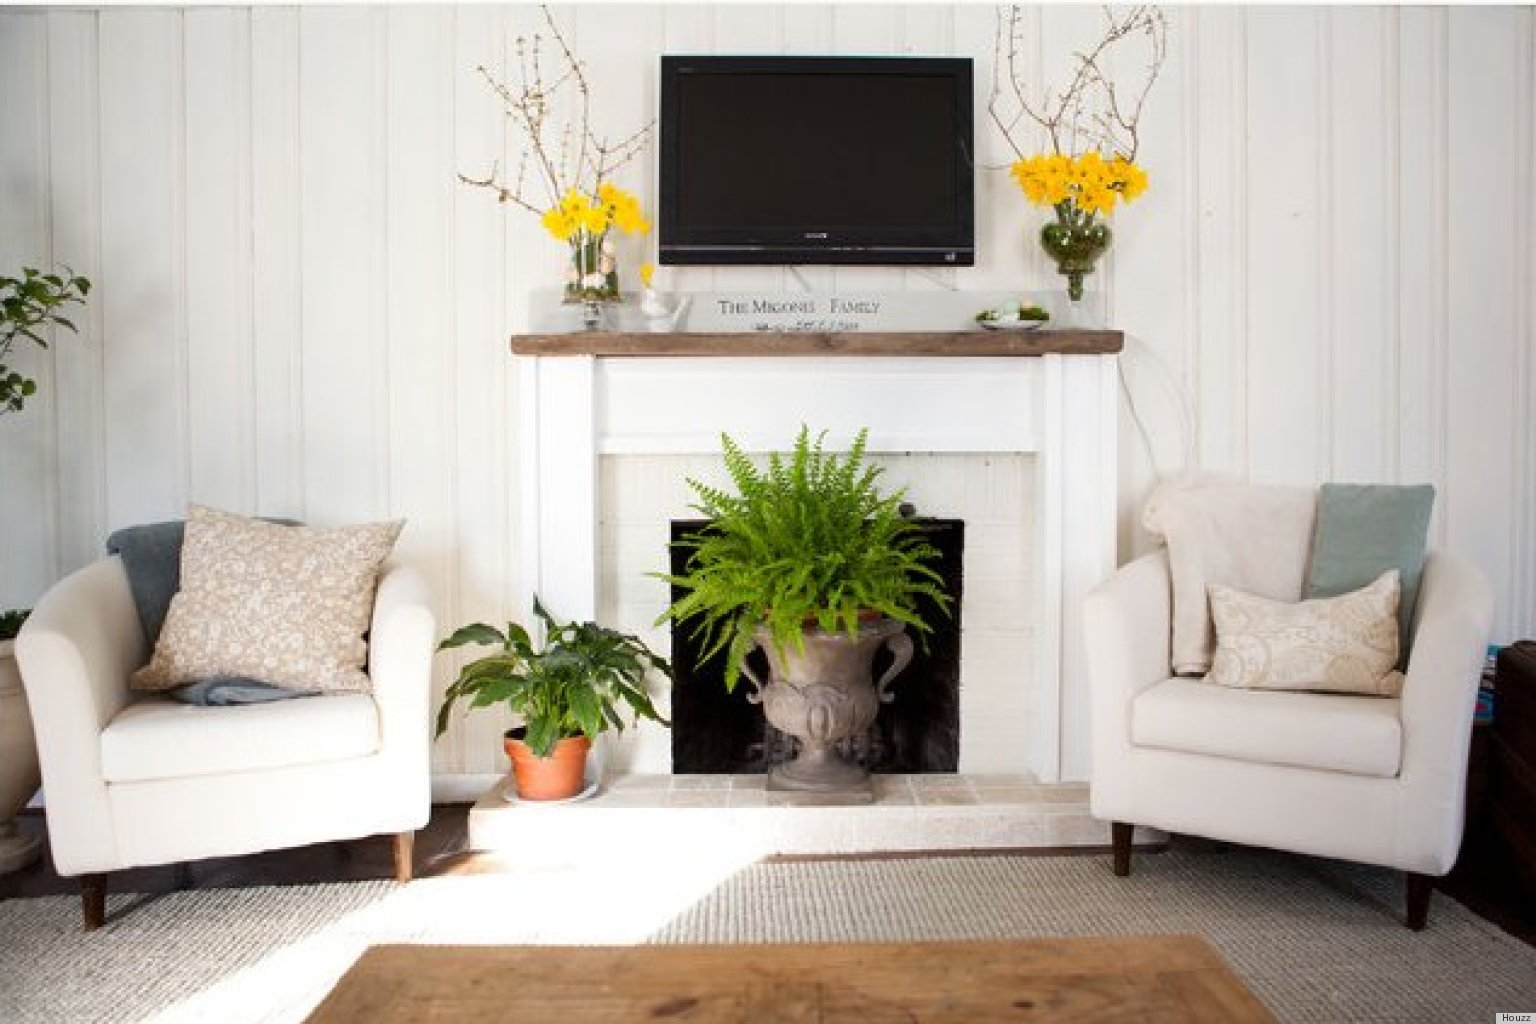 10 ways to decorate your fireplace in the summer since you wont need it anyway photos huffpost - Decorate Pictures